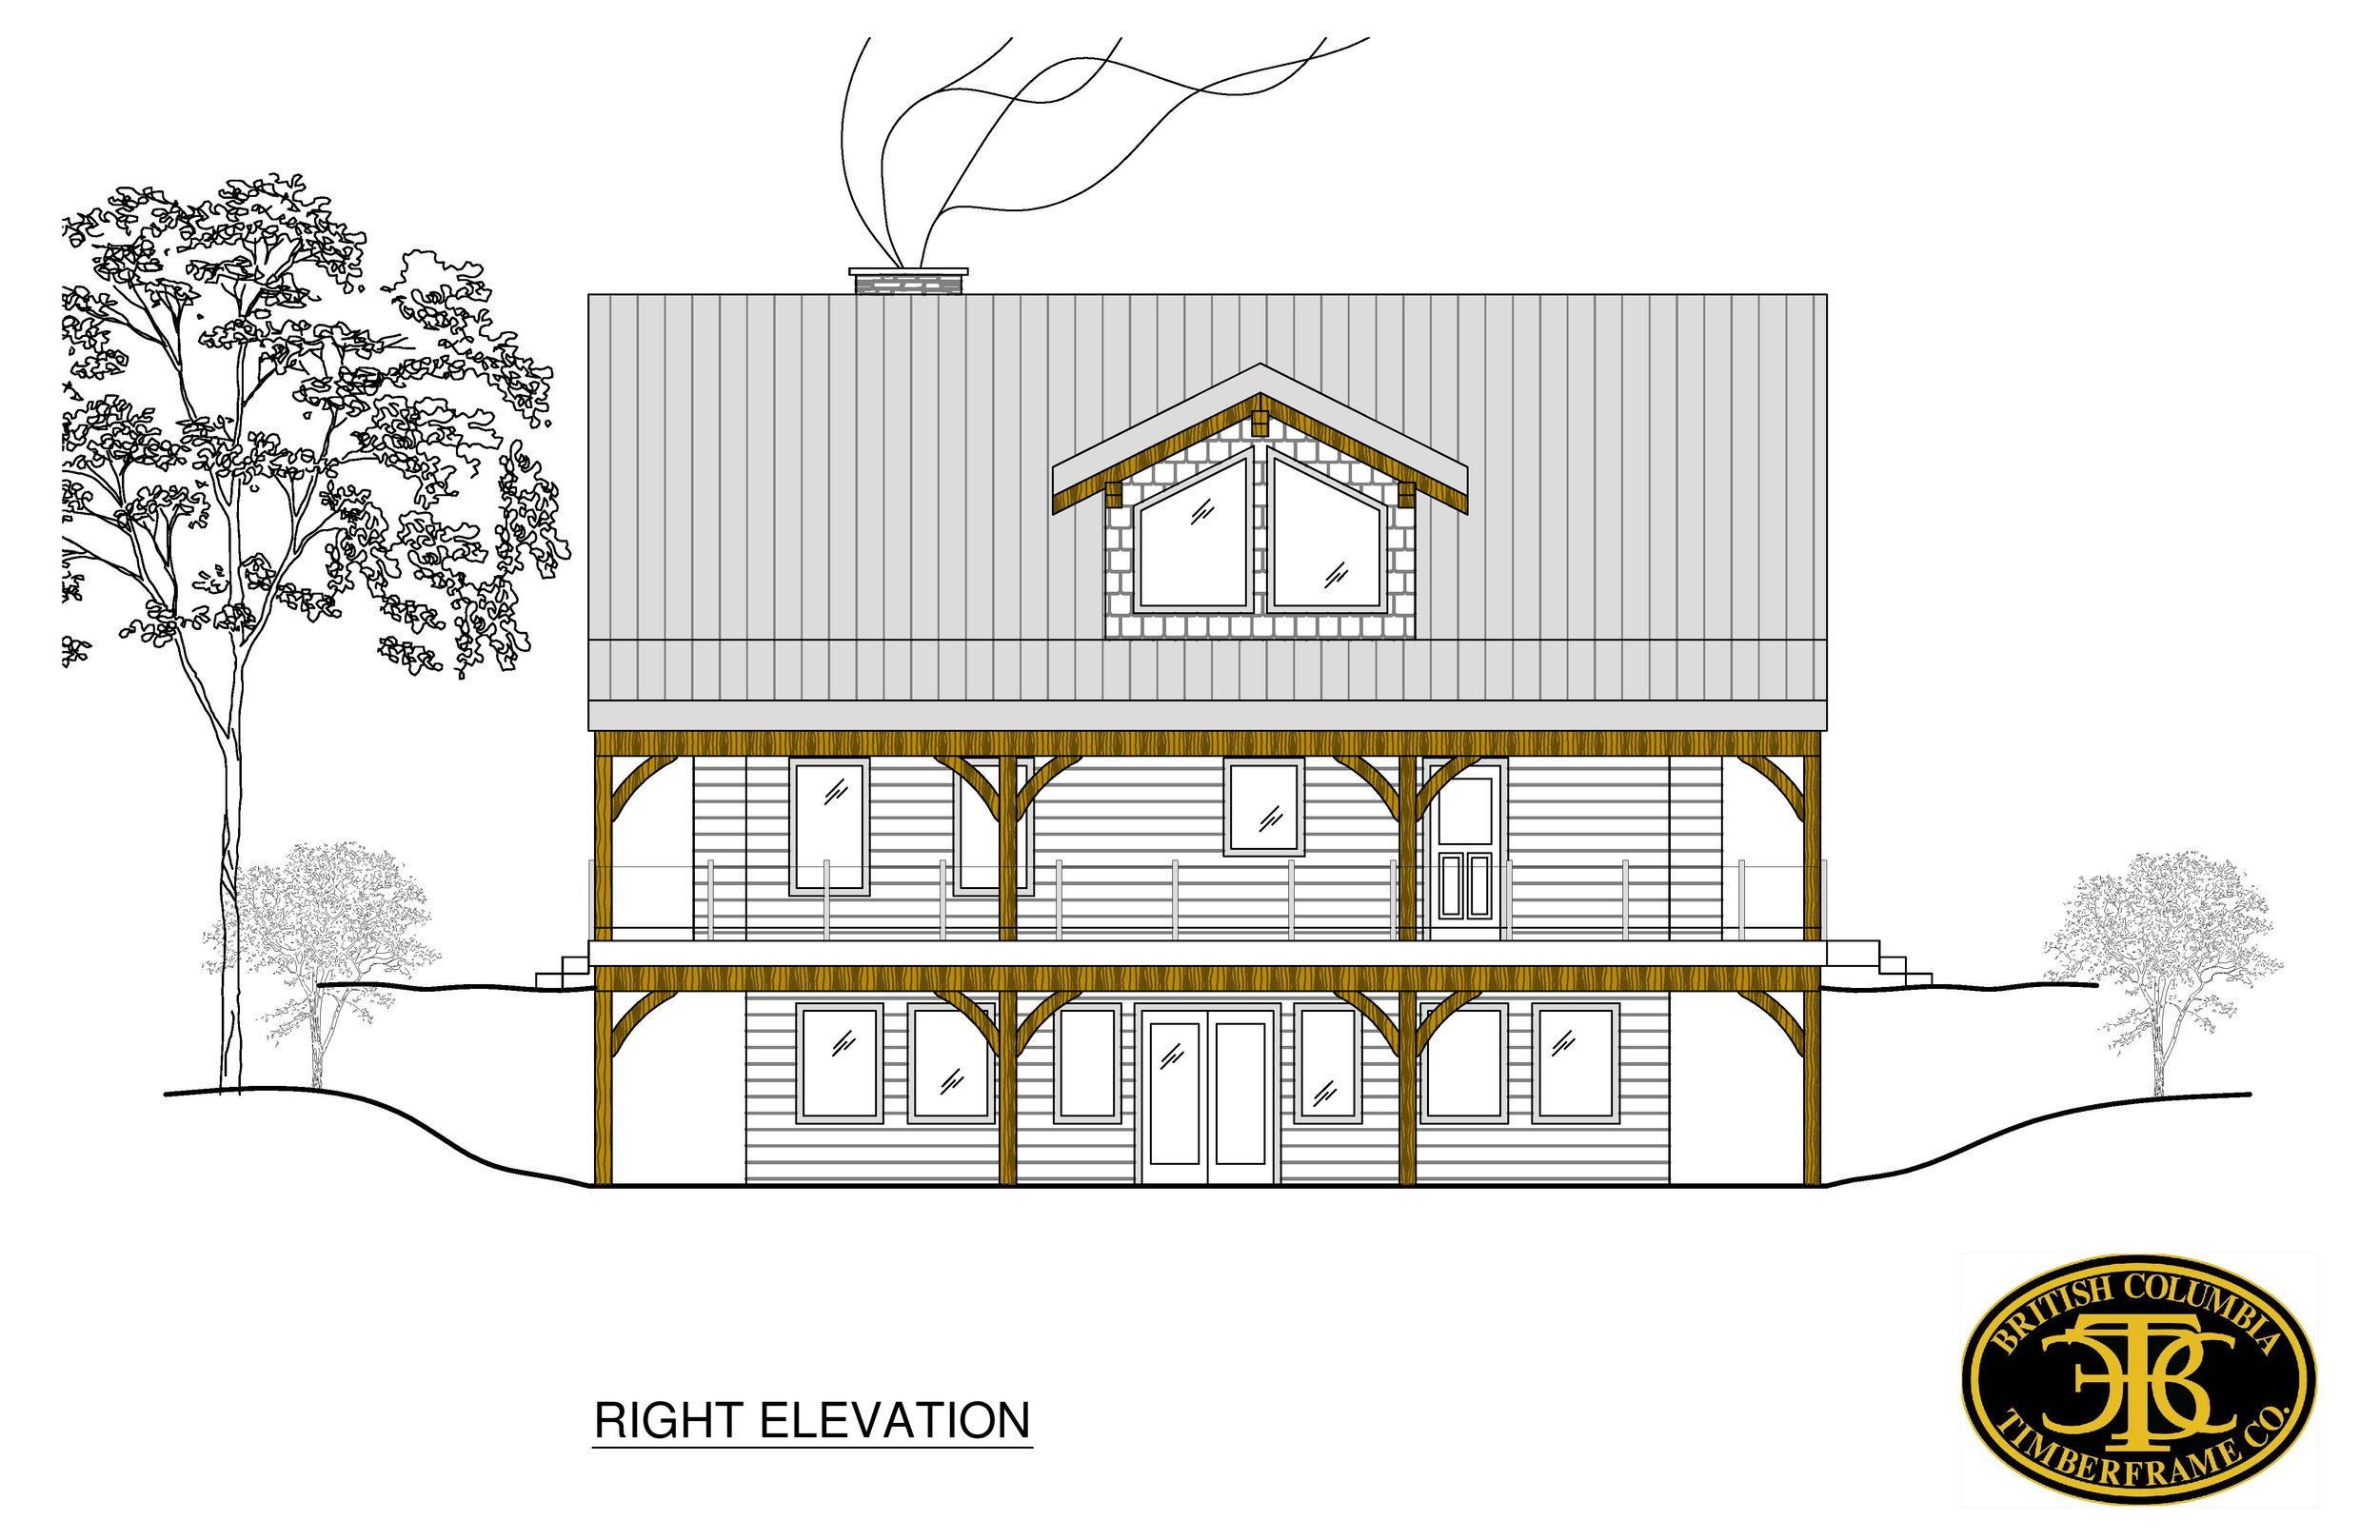 Cranbrook_Right Elevation-page-001.jpg